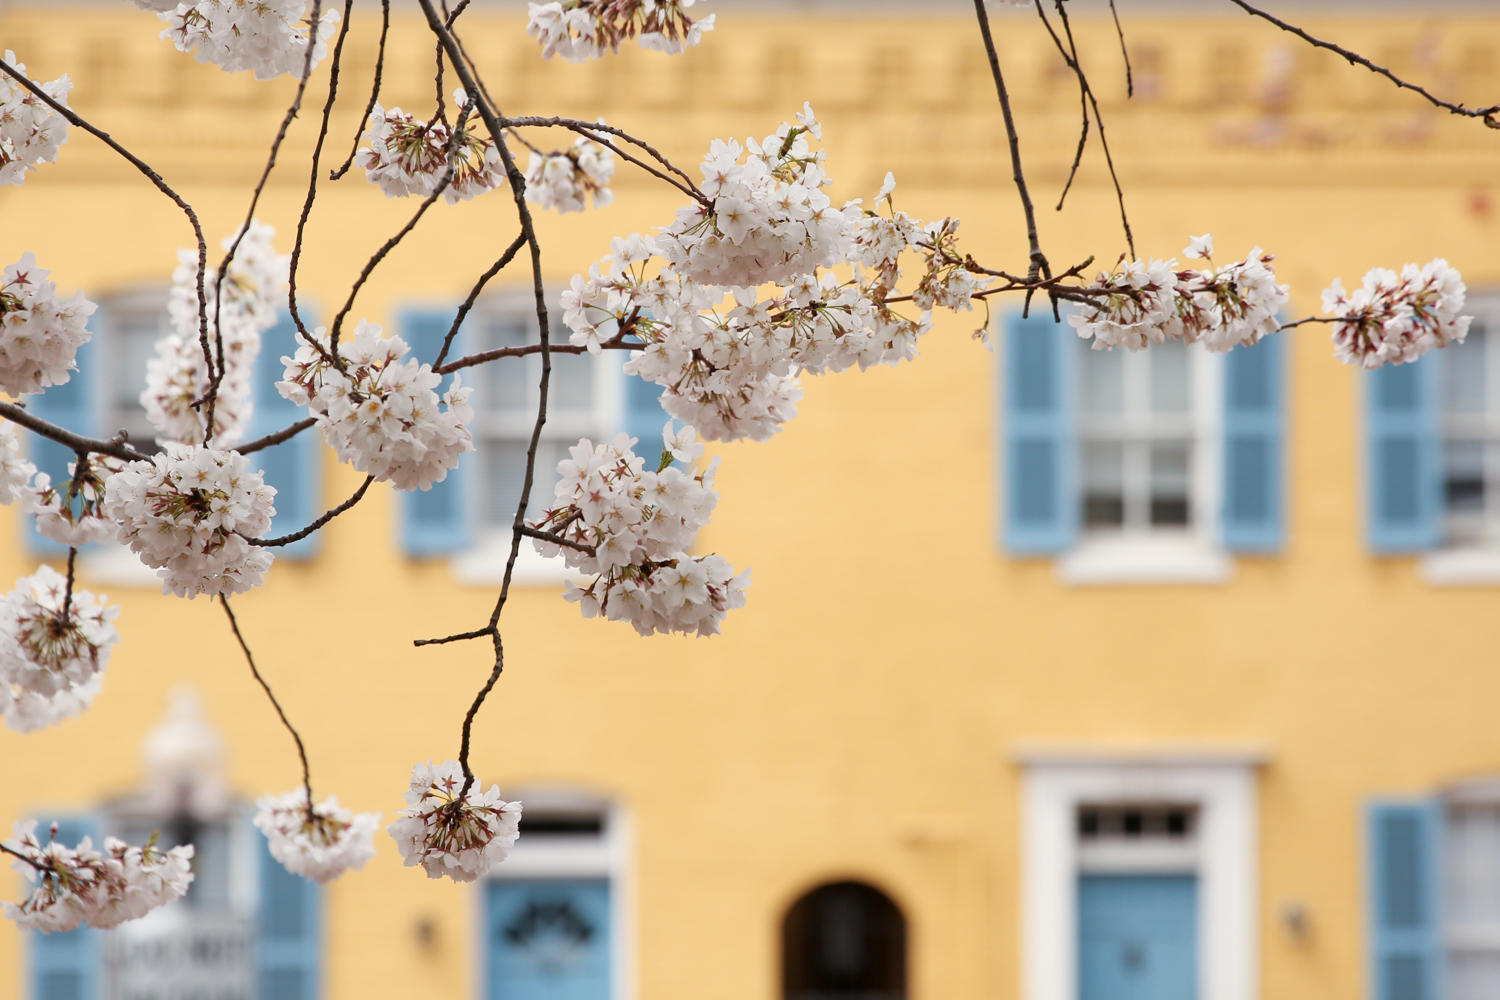 We're well into April, but Mother Nature hasn't gotten the memo that it's time to warm up. Despite lower-than-average temperatures, which will hopefully bounce up soon, the subtle signs of spring are blooming all around D.C. (Amanda Andrade-Rhoades/DC Refined)